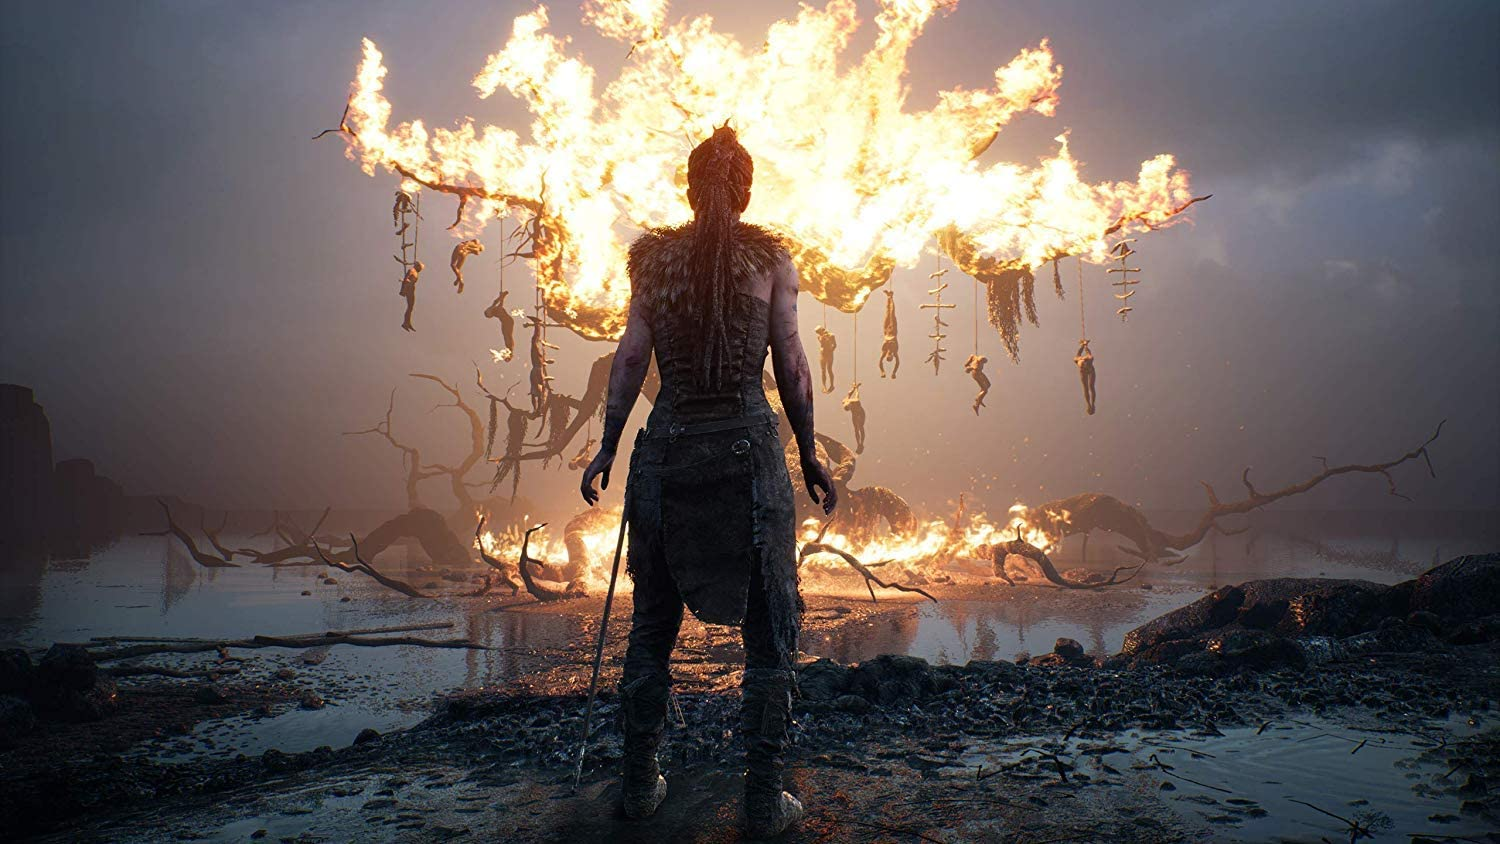 Amazon.com: Hellblade: Senuas Sacrifice - PlayStation 4 ...